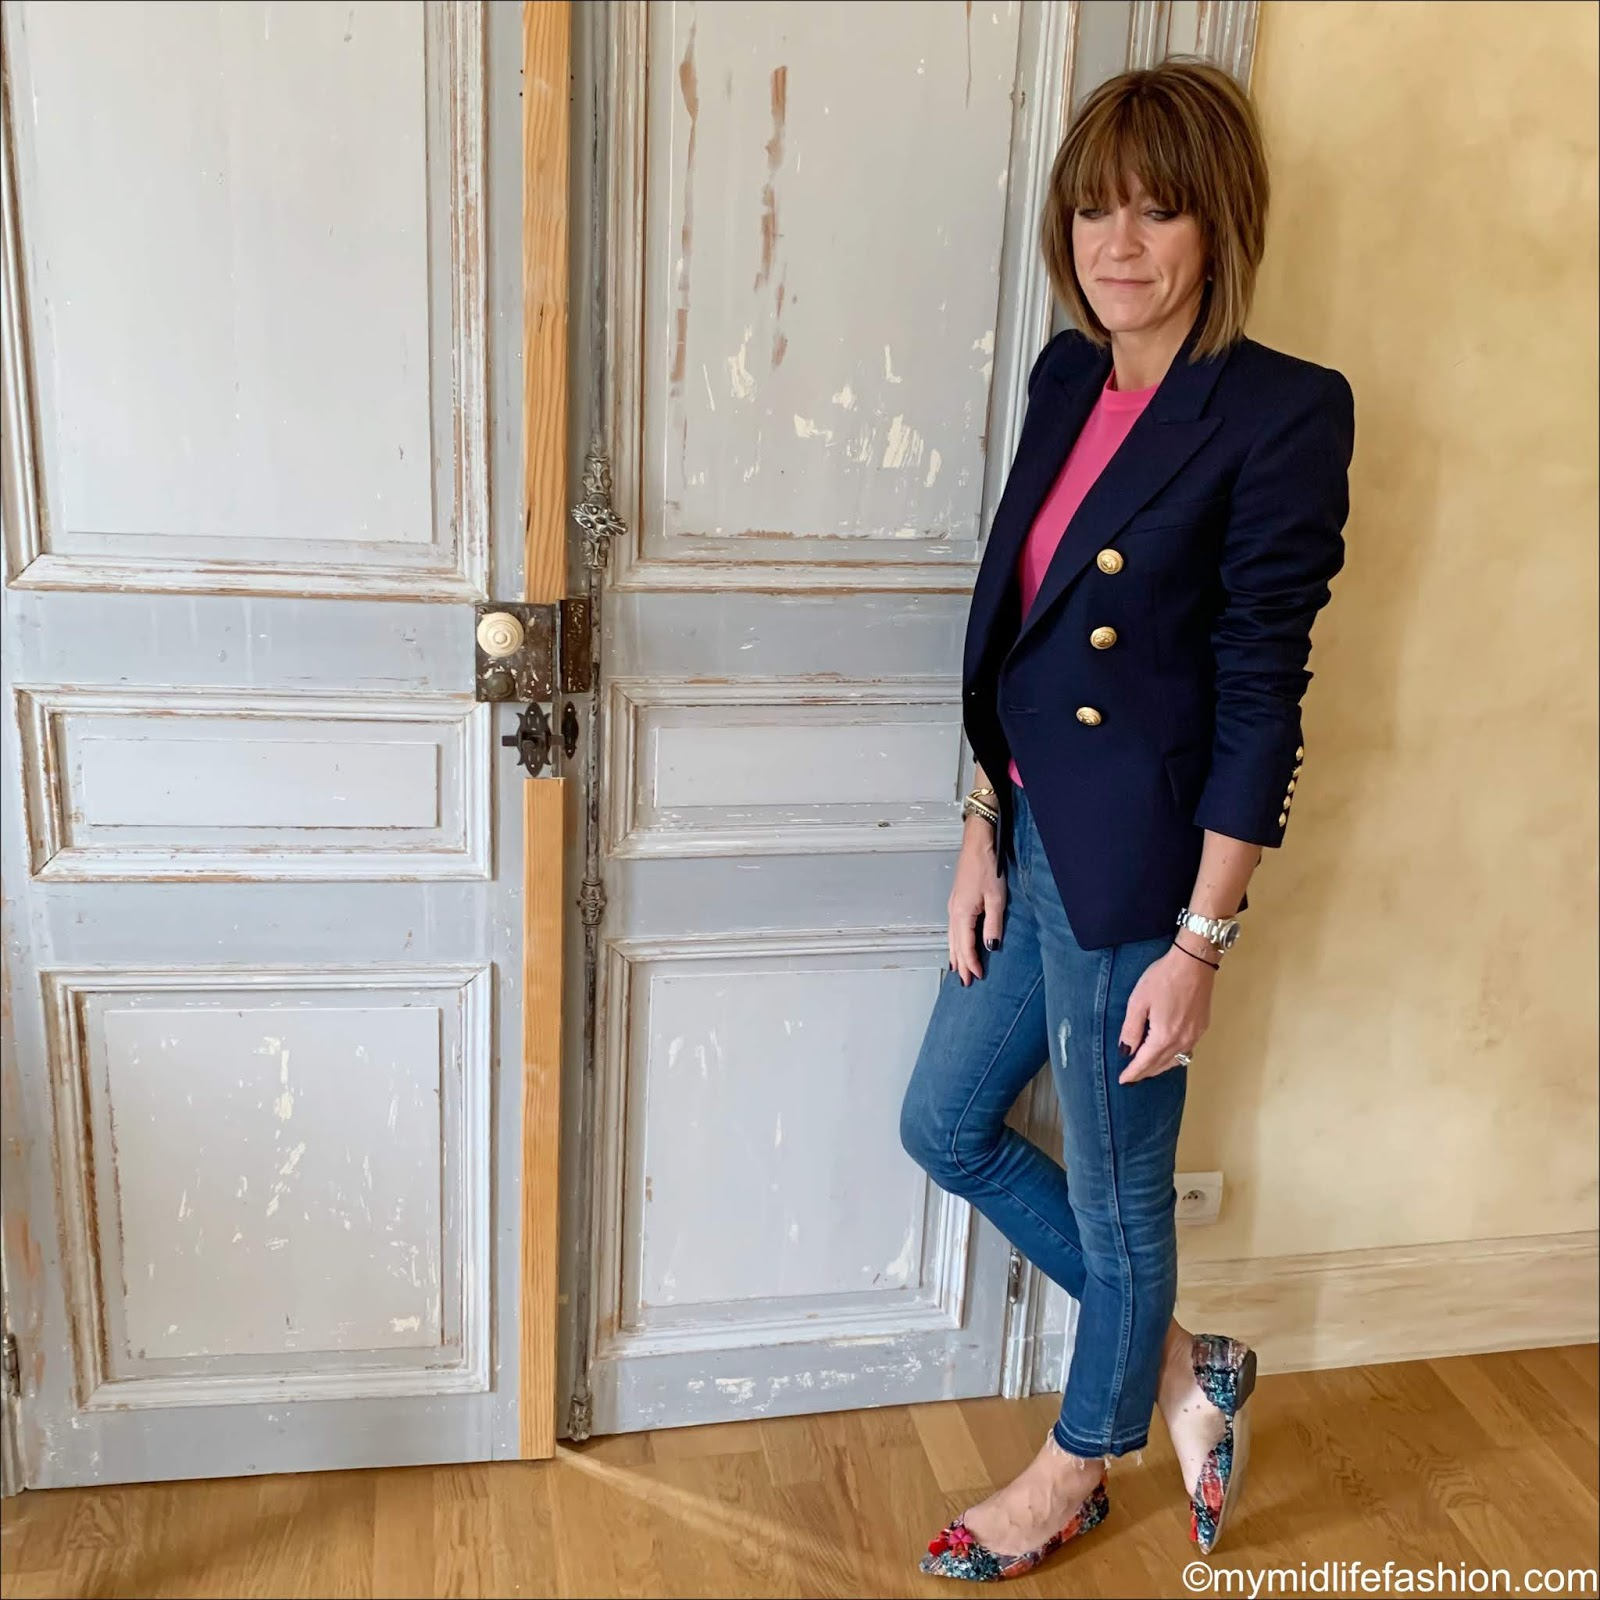 my midlife fashion, Balmain double breasted blazer, Joseph cashmere light knit short sleeve top, j crew jeans, j crew tweed tassel flats